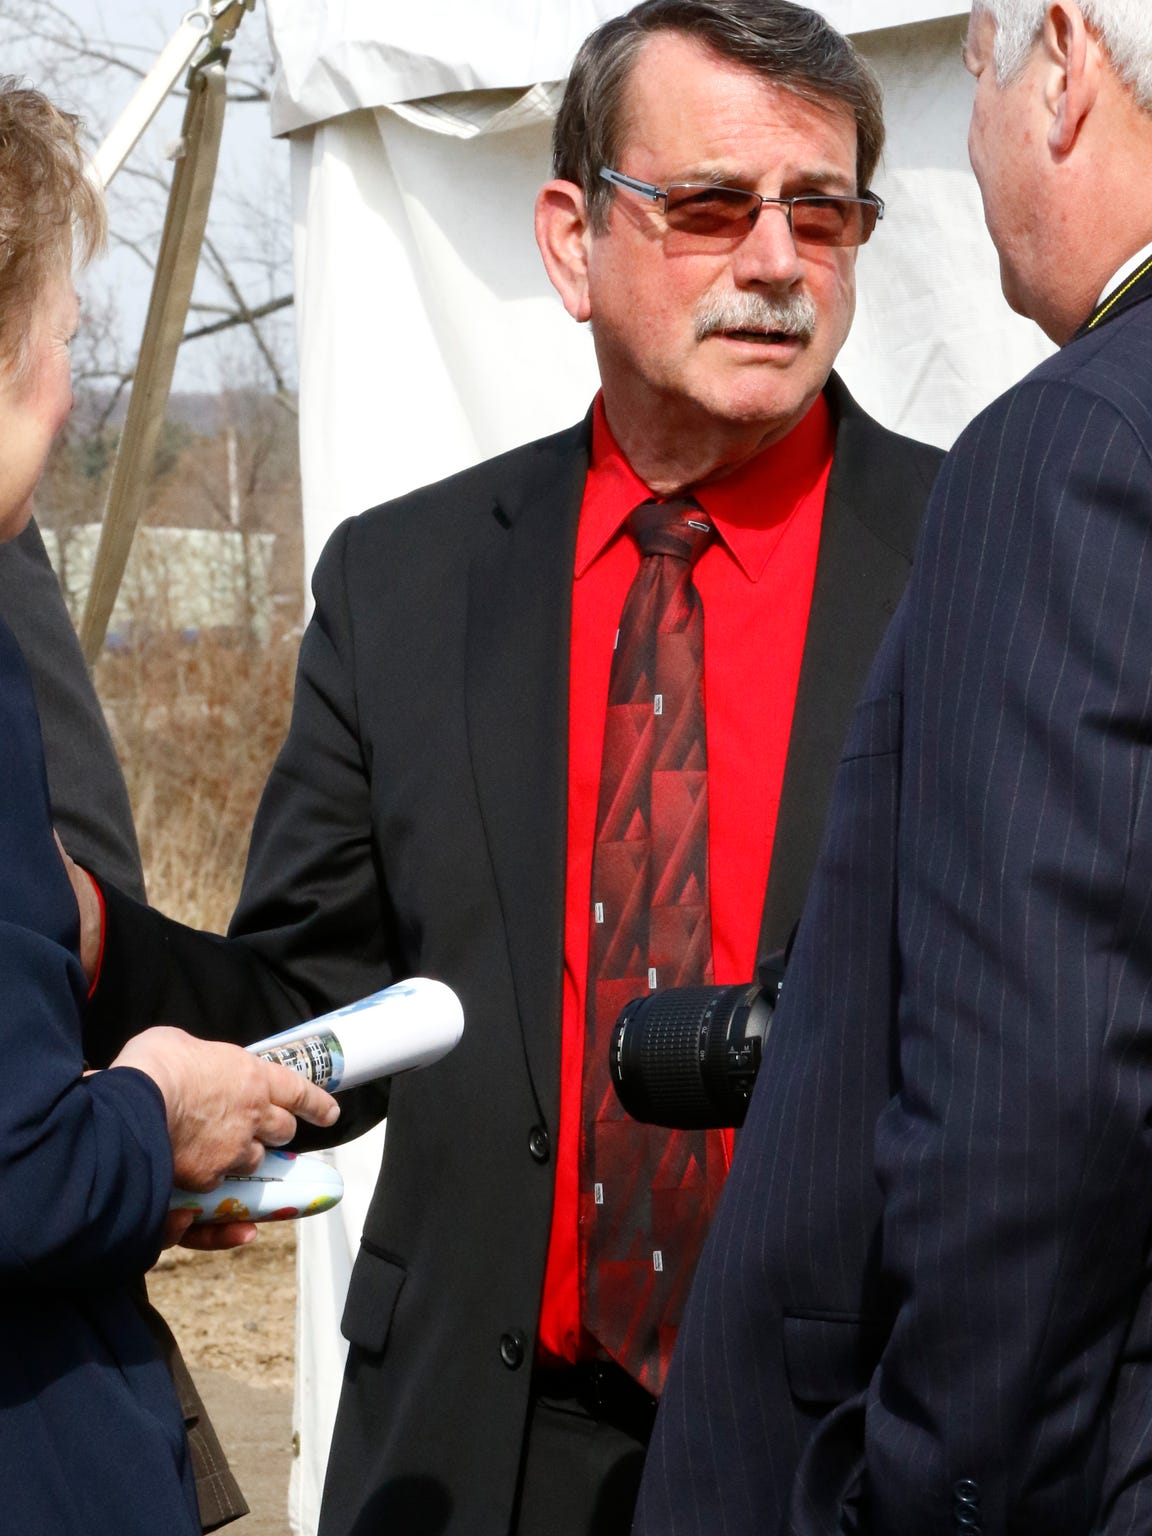 Wausau Mayor Jim Tipple mingles Monday morning, April 18, 2016, during a groundbreaking ceremony of the north riverfront development in Wausau.